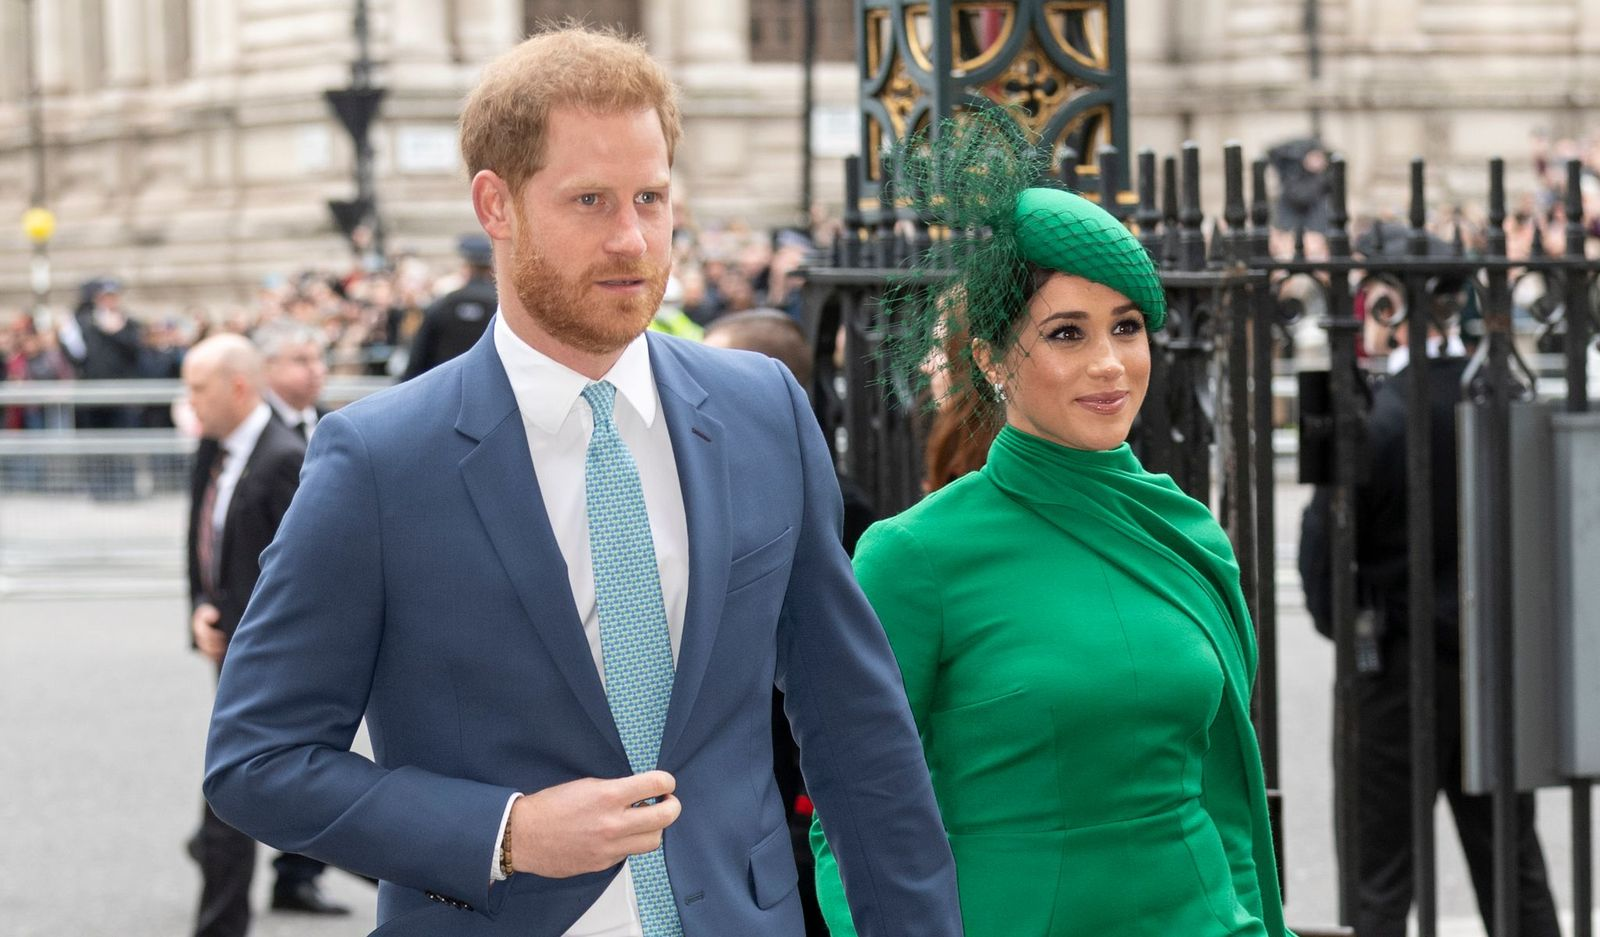 Prince Harry and Meghan at the Commonwealth Day Service 2020 at Westminster Abbey on March 9, 2020 | Photo: Getty Images